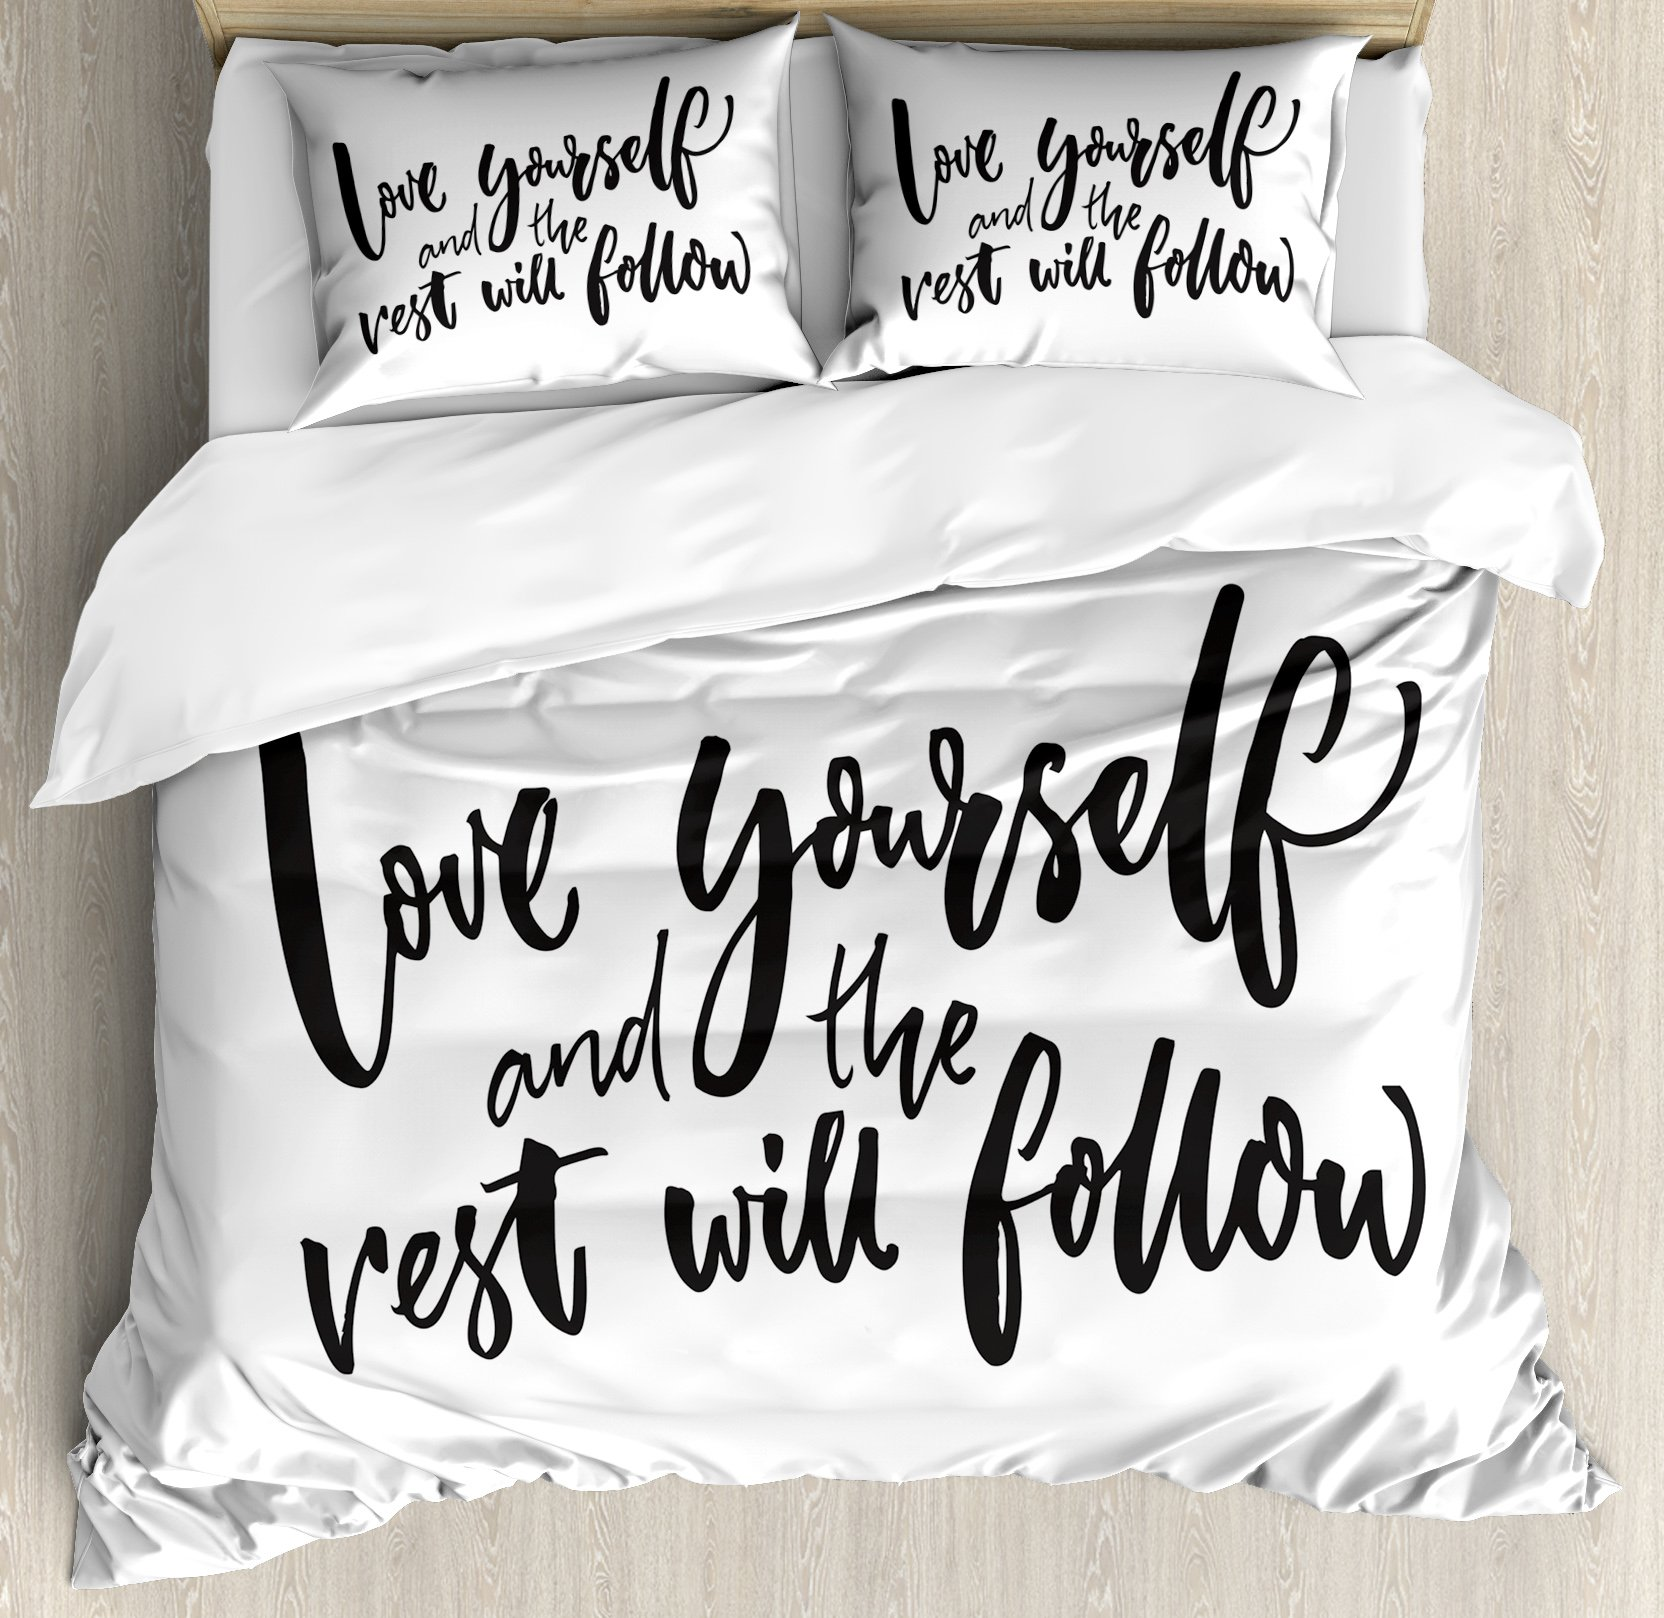 Quote Duvet Cover Set Queen Size by Ambesonne, Love Yourself and the Rest Will Follow Motivational Phrase Wisdom Words Zen, Decorative 3 Piece Bedding Set with 2 Pillow Shams, Charcoal Grey White